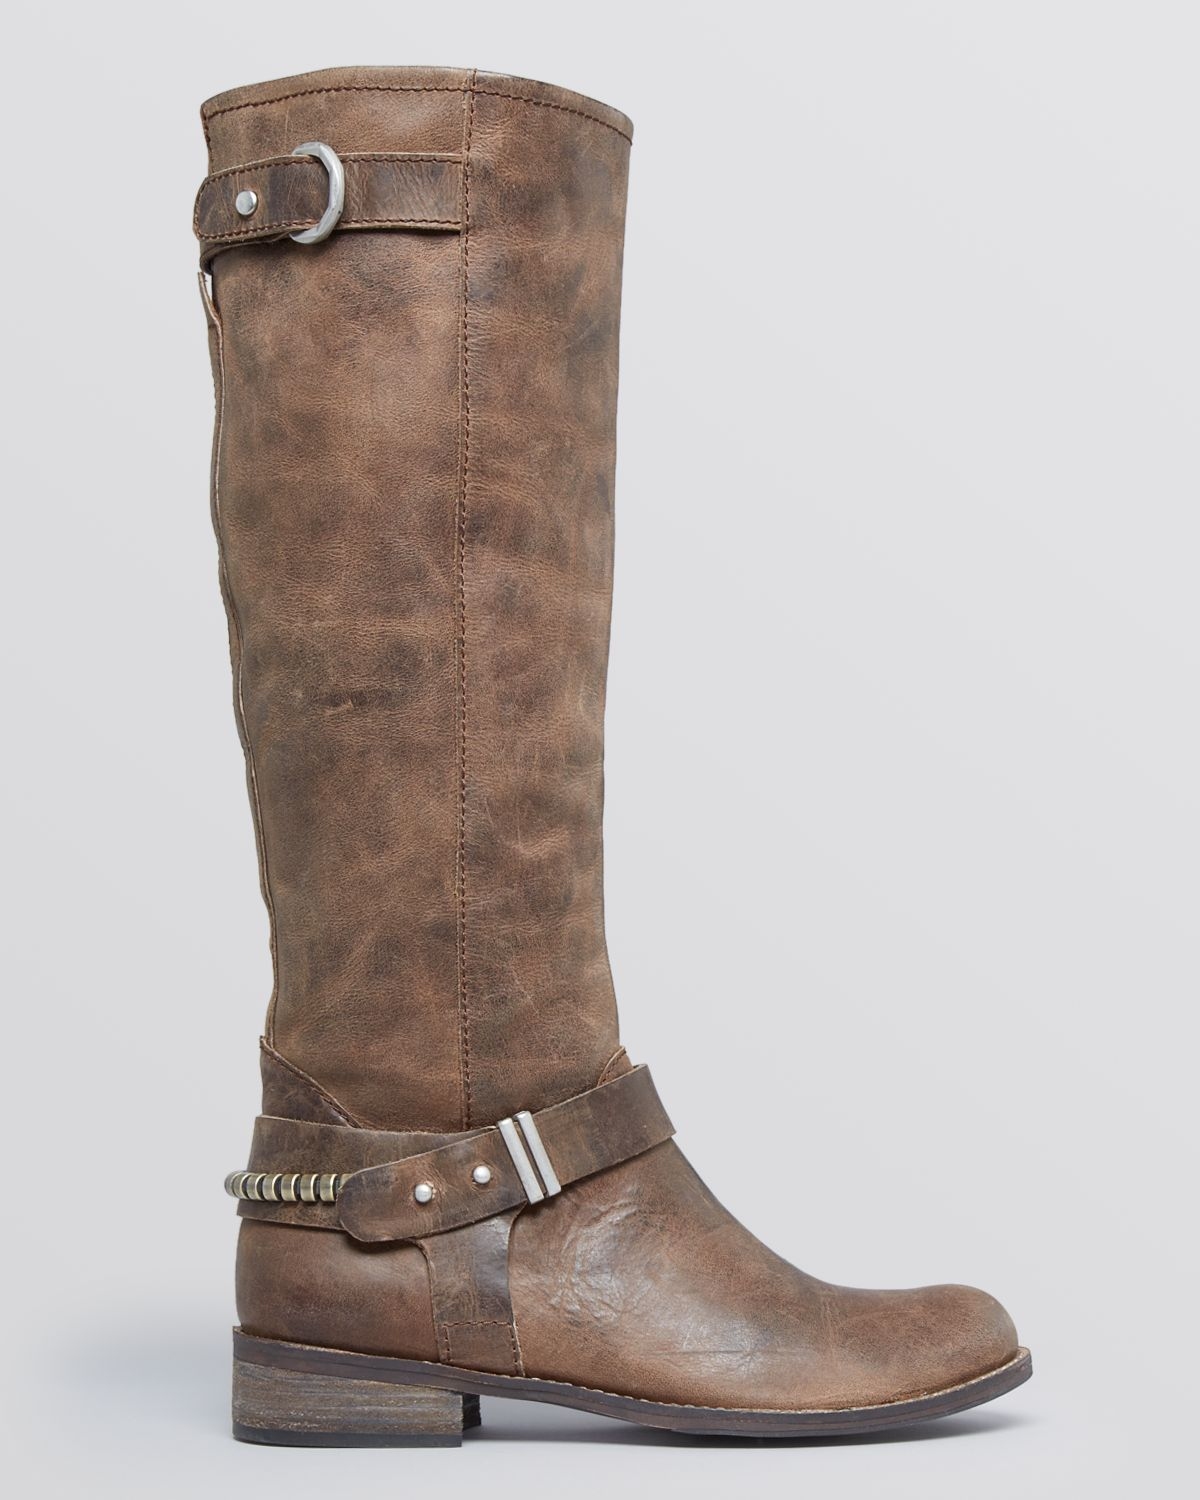 Steven by Steve Madden Riding Boots Ryley in Black (Grey)